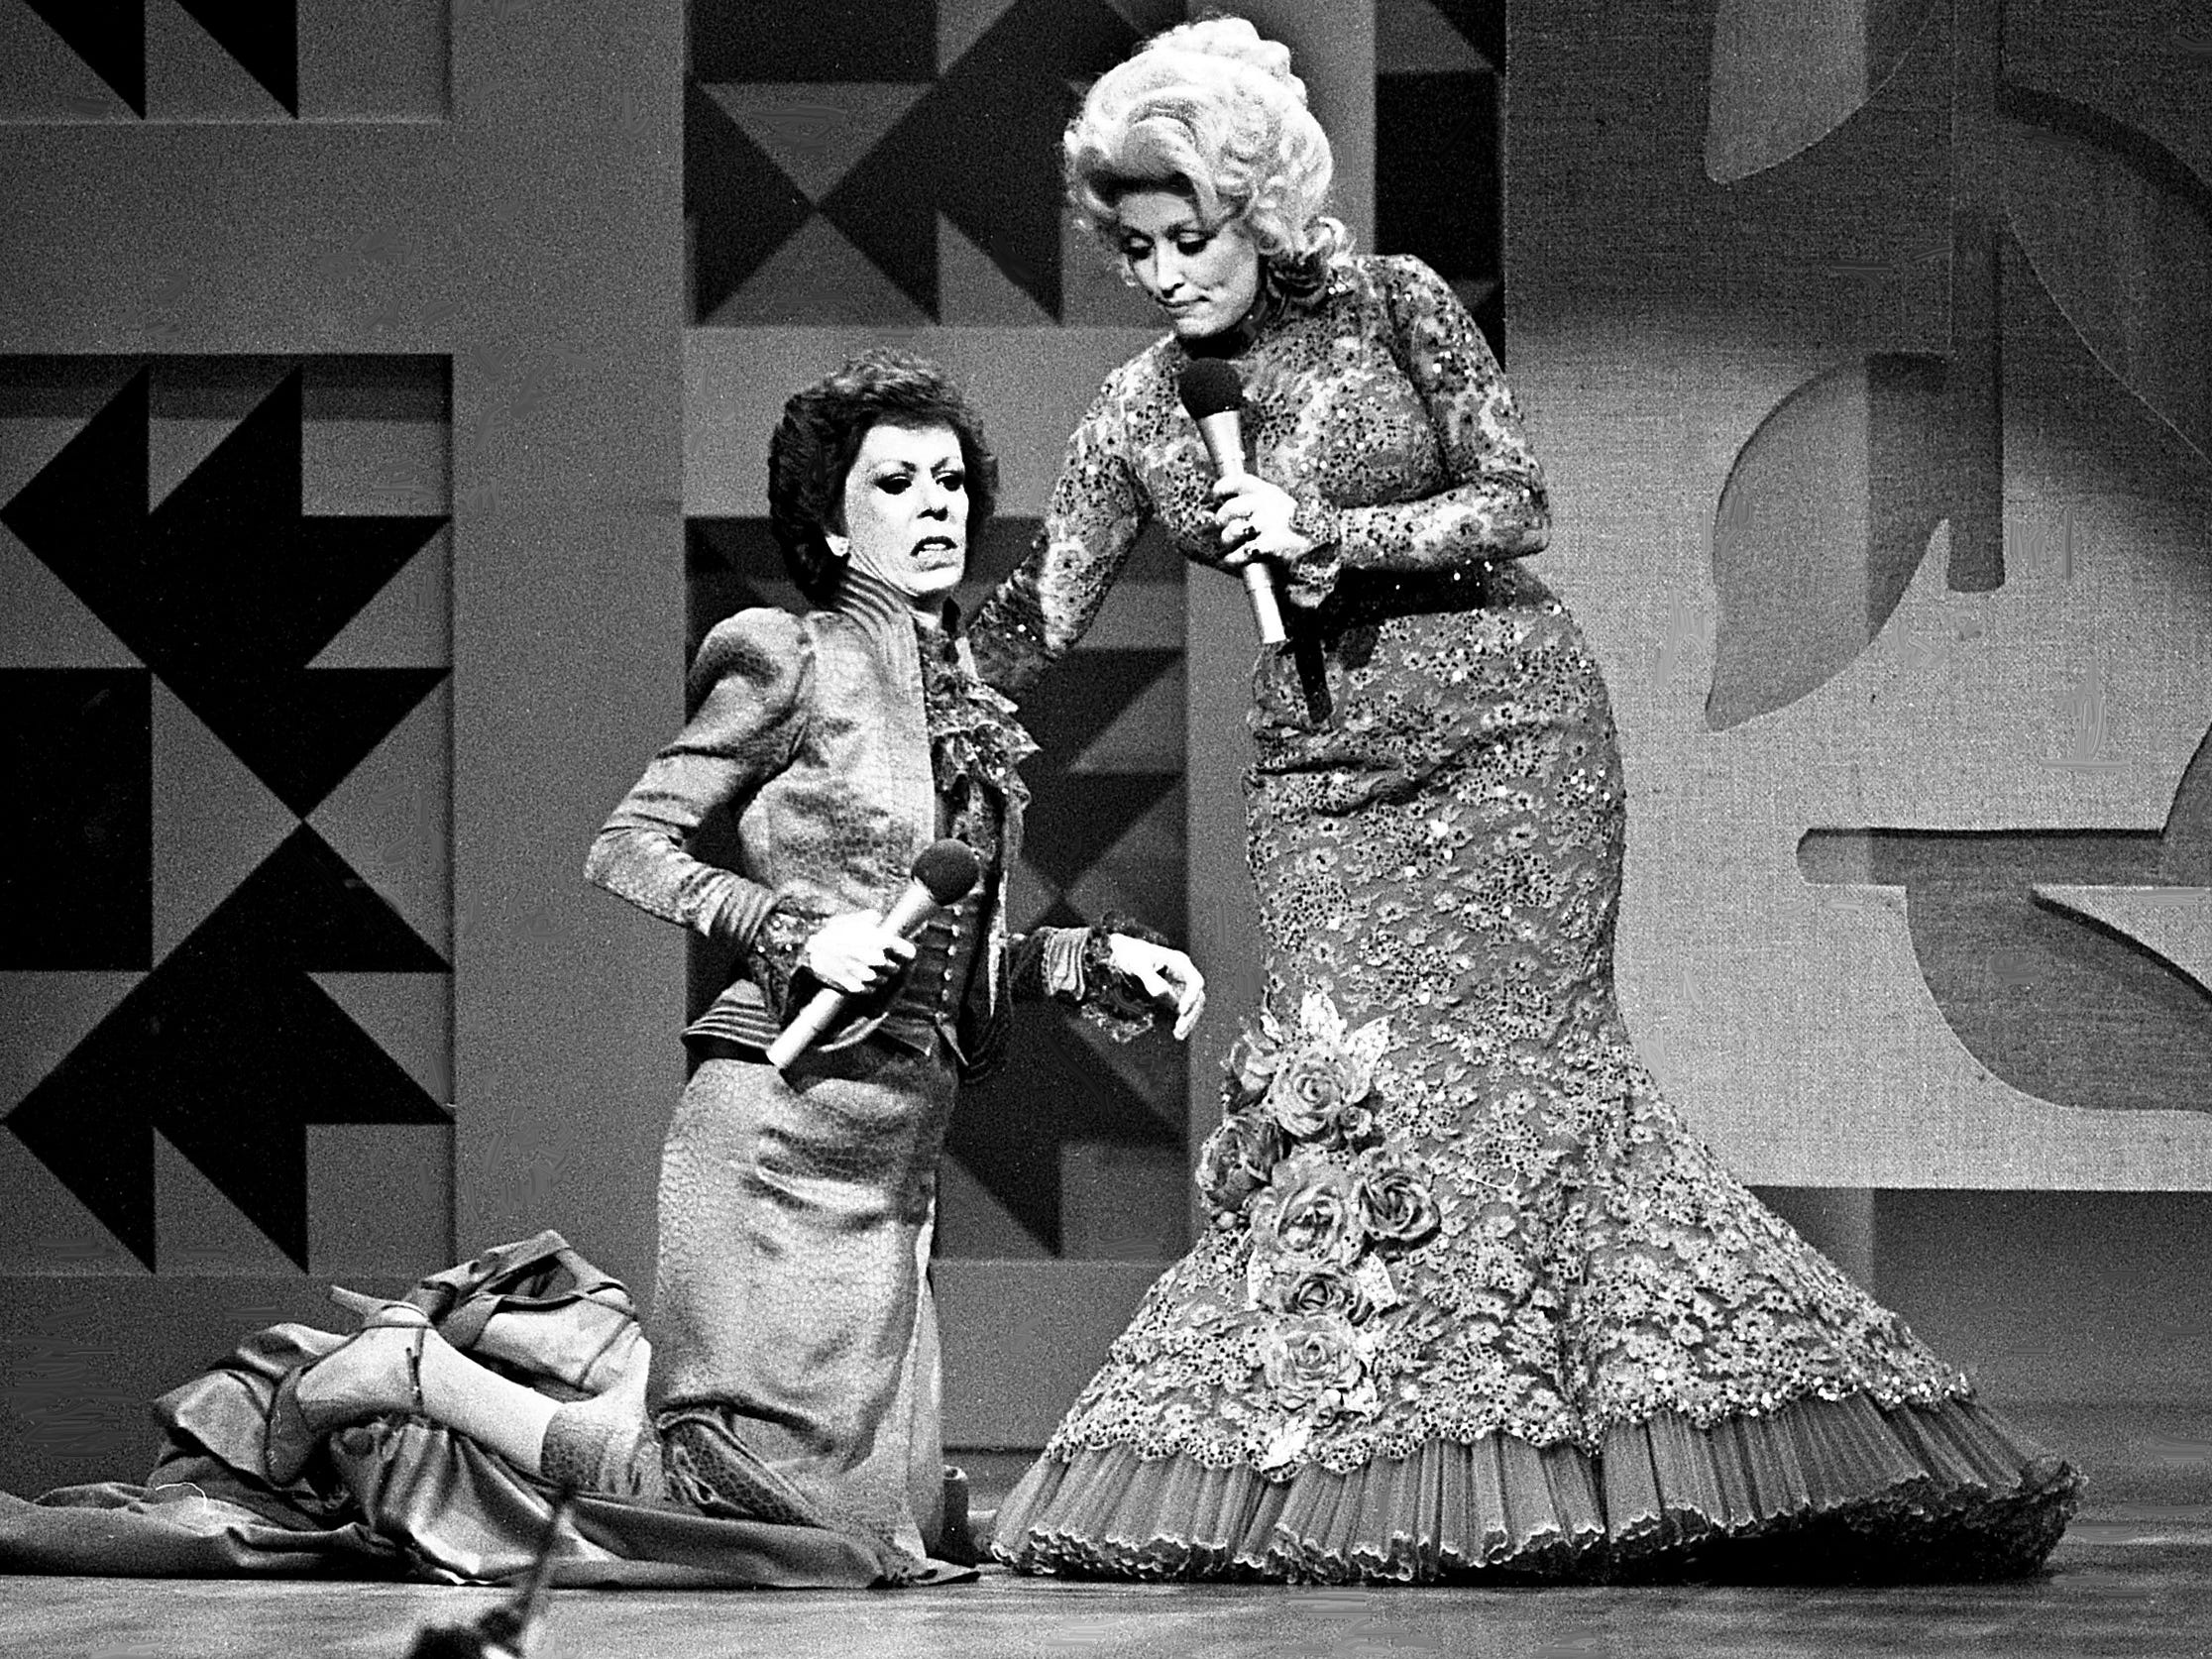 """Dolly Parton, right, helps Carol Burnett after the curtain she was holding gave away and she fell during their mock-melodramatic love song skit during the taping of the """"Dolly and Carol in Nashville"""" television special before a packed audience at the Grand Ole Opry House Jan. 10, 1979."""